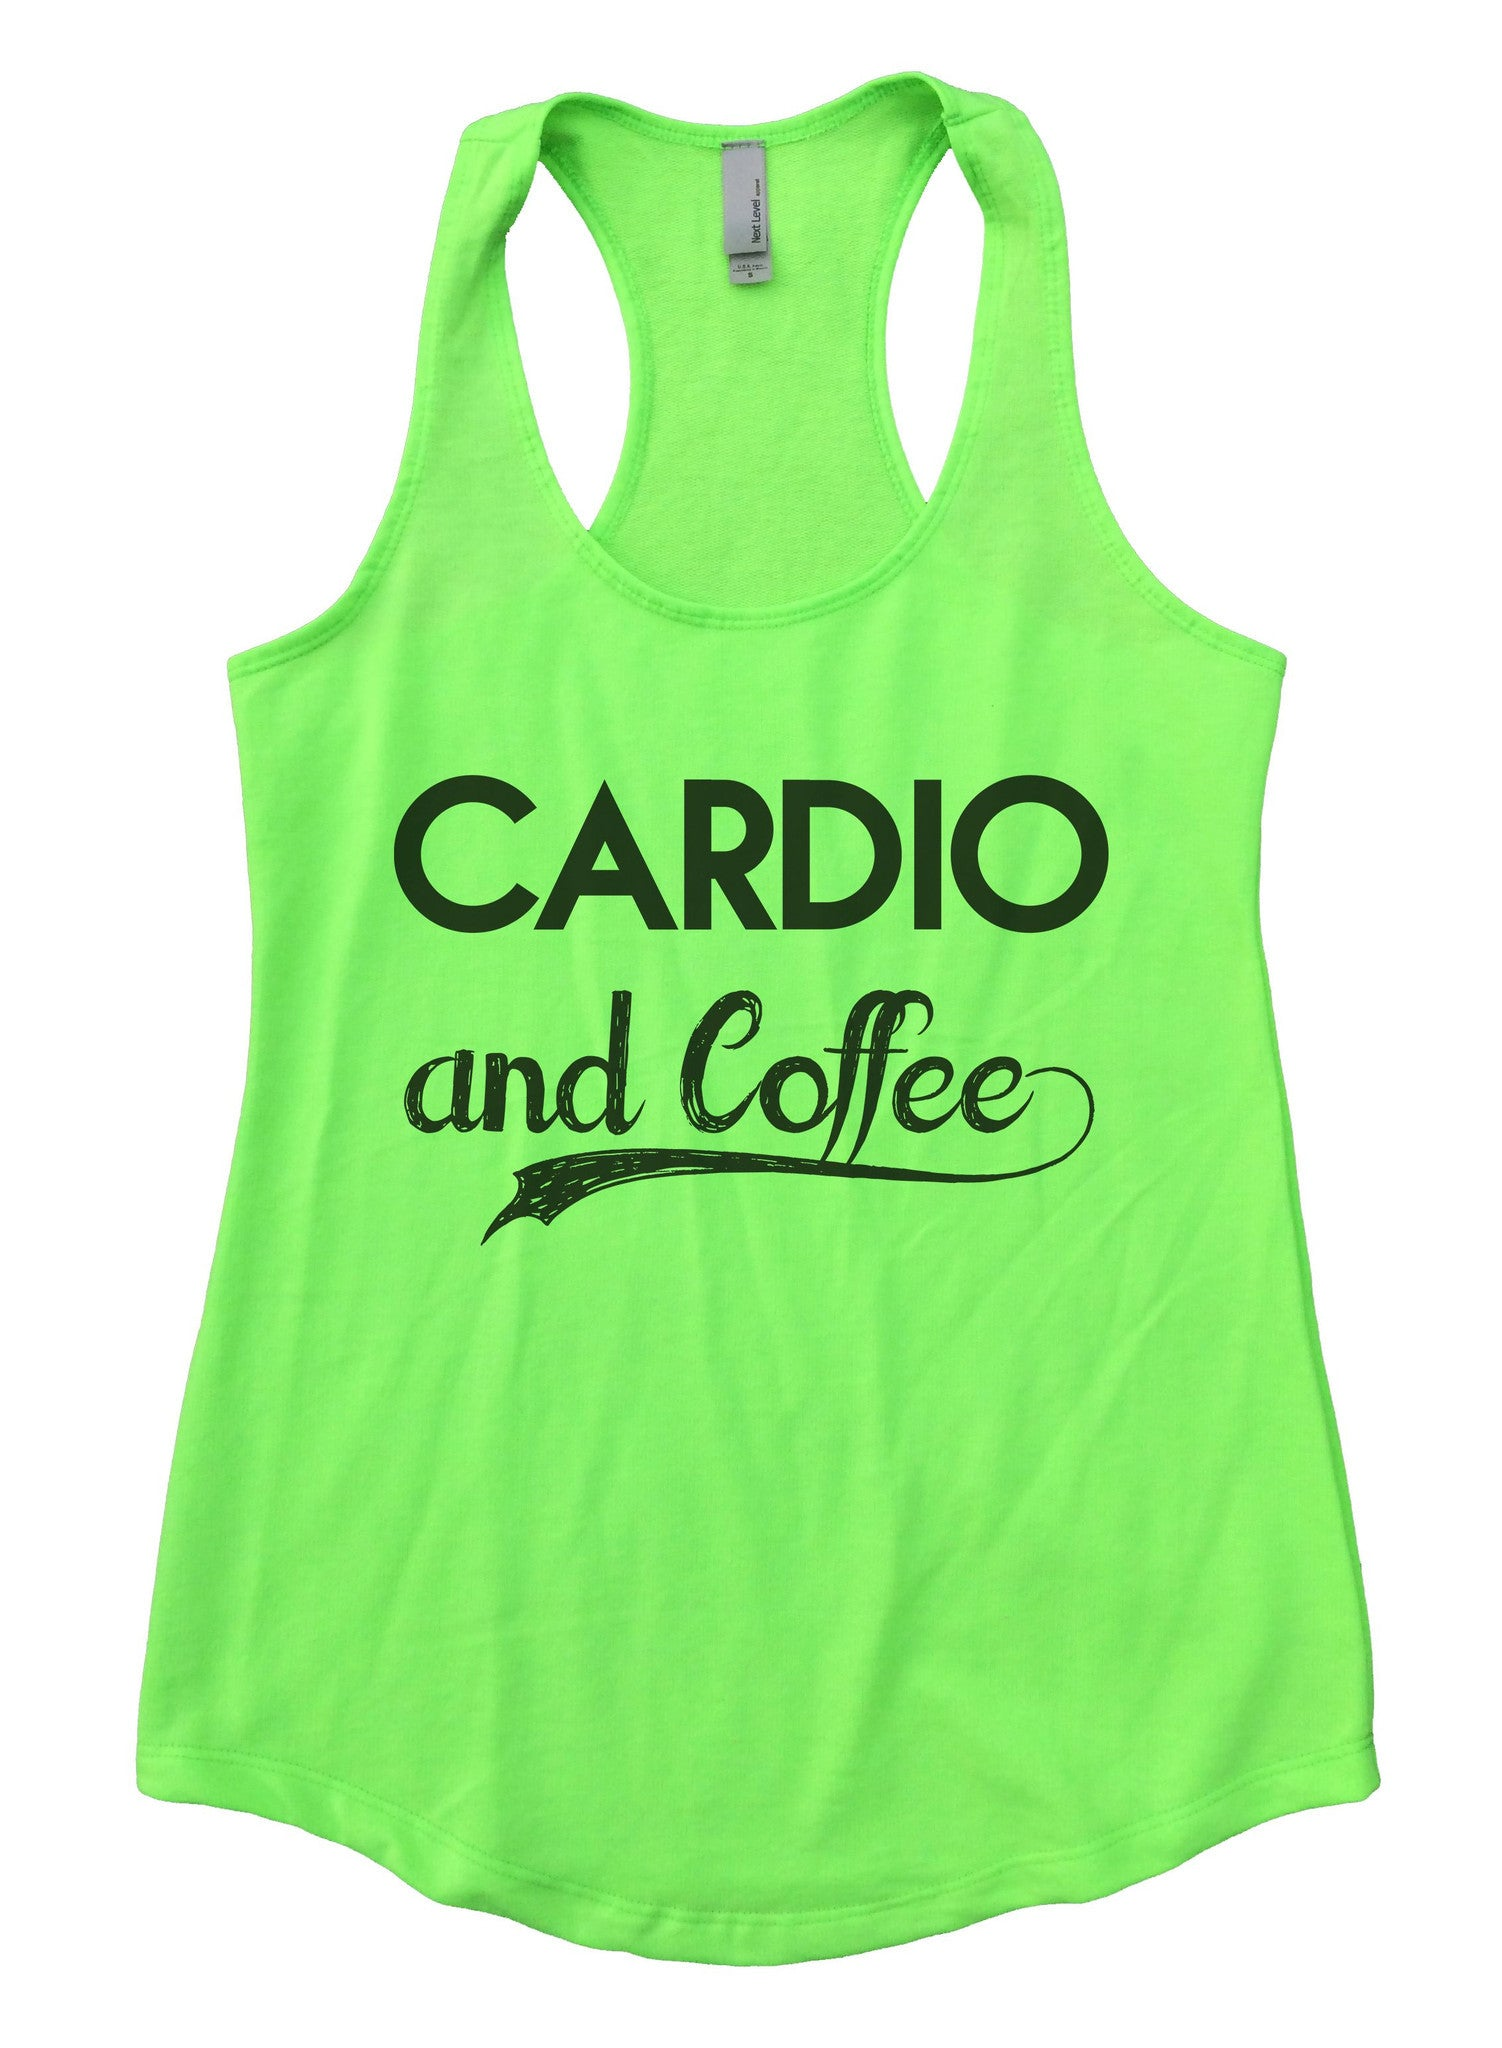 Cardio And Coffee Womens Workout Tank Top F797 - Funny Shirts Tank Tops Burnouts and Triblends  - 2